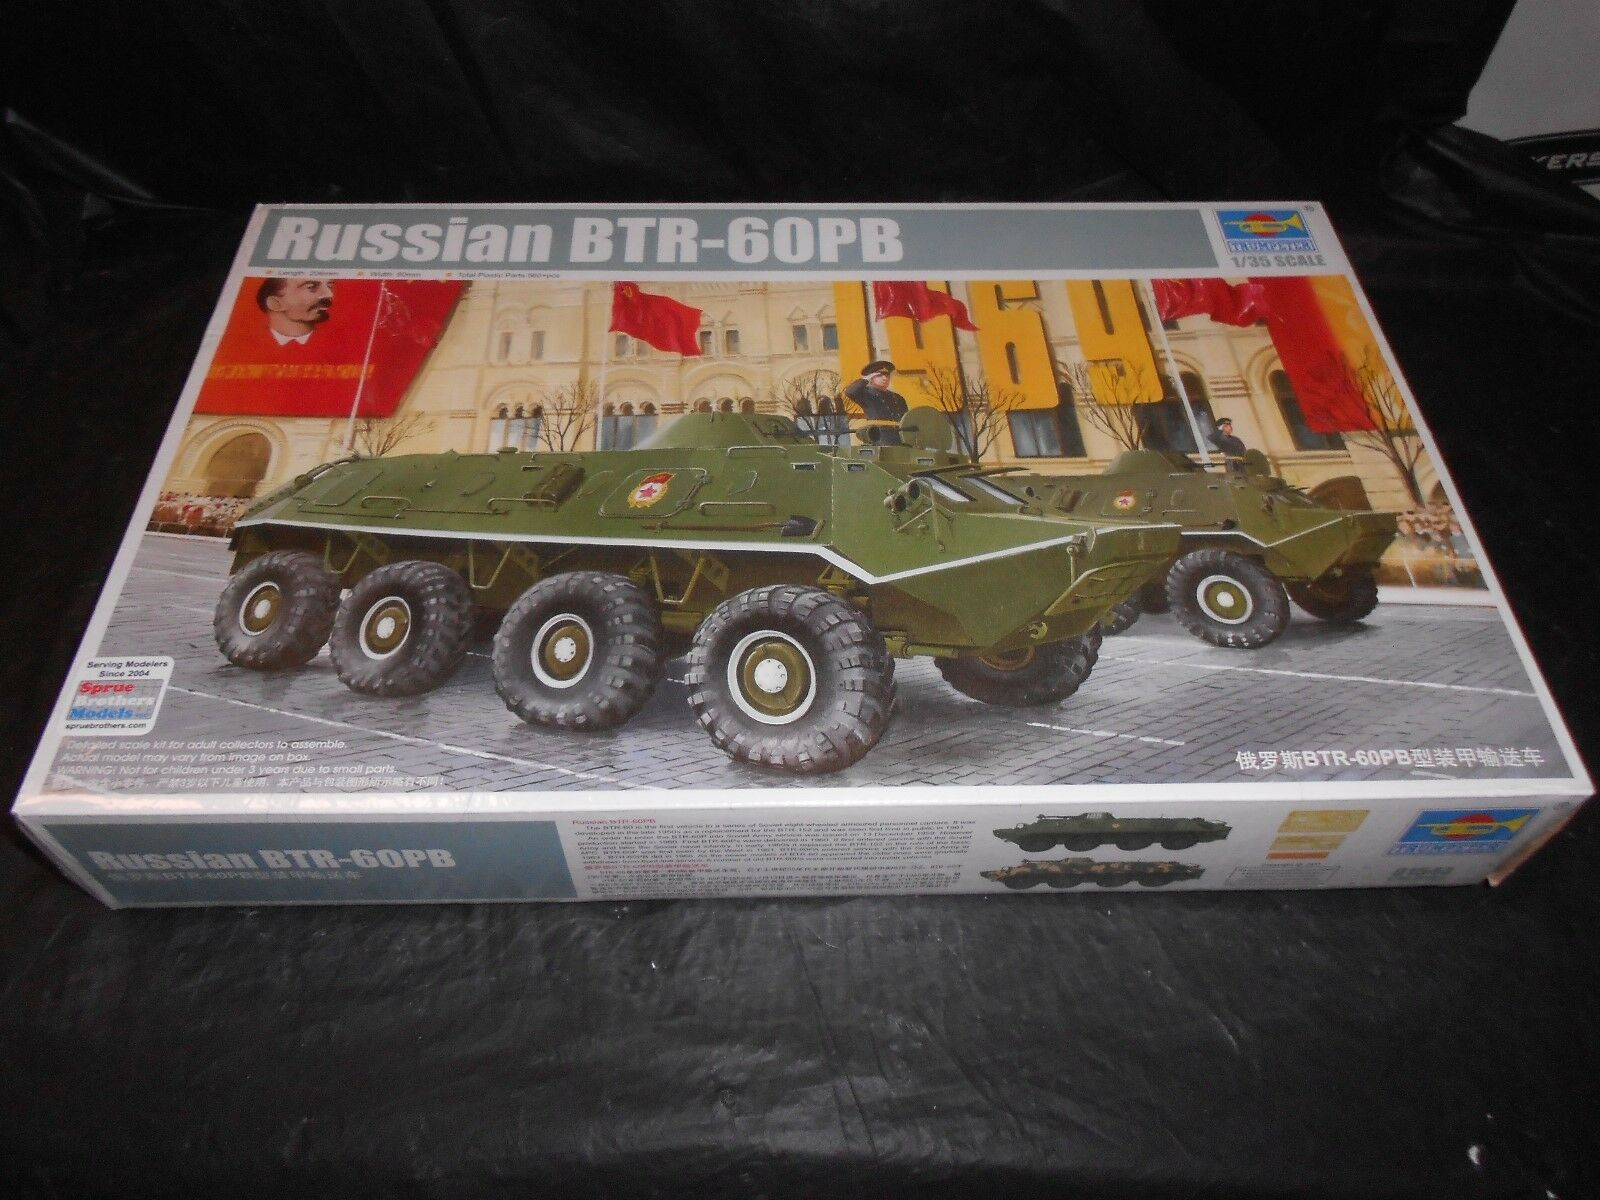 01544 Trumpeter 1 35 Model BTR-60PB APC Delivery Wagon Tank Vehicle Panzer Kit